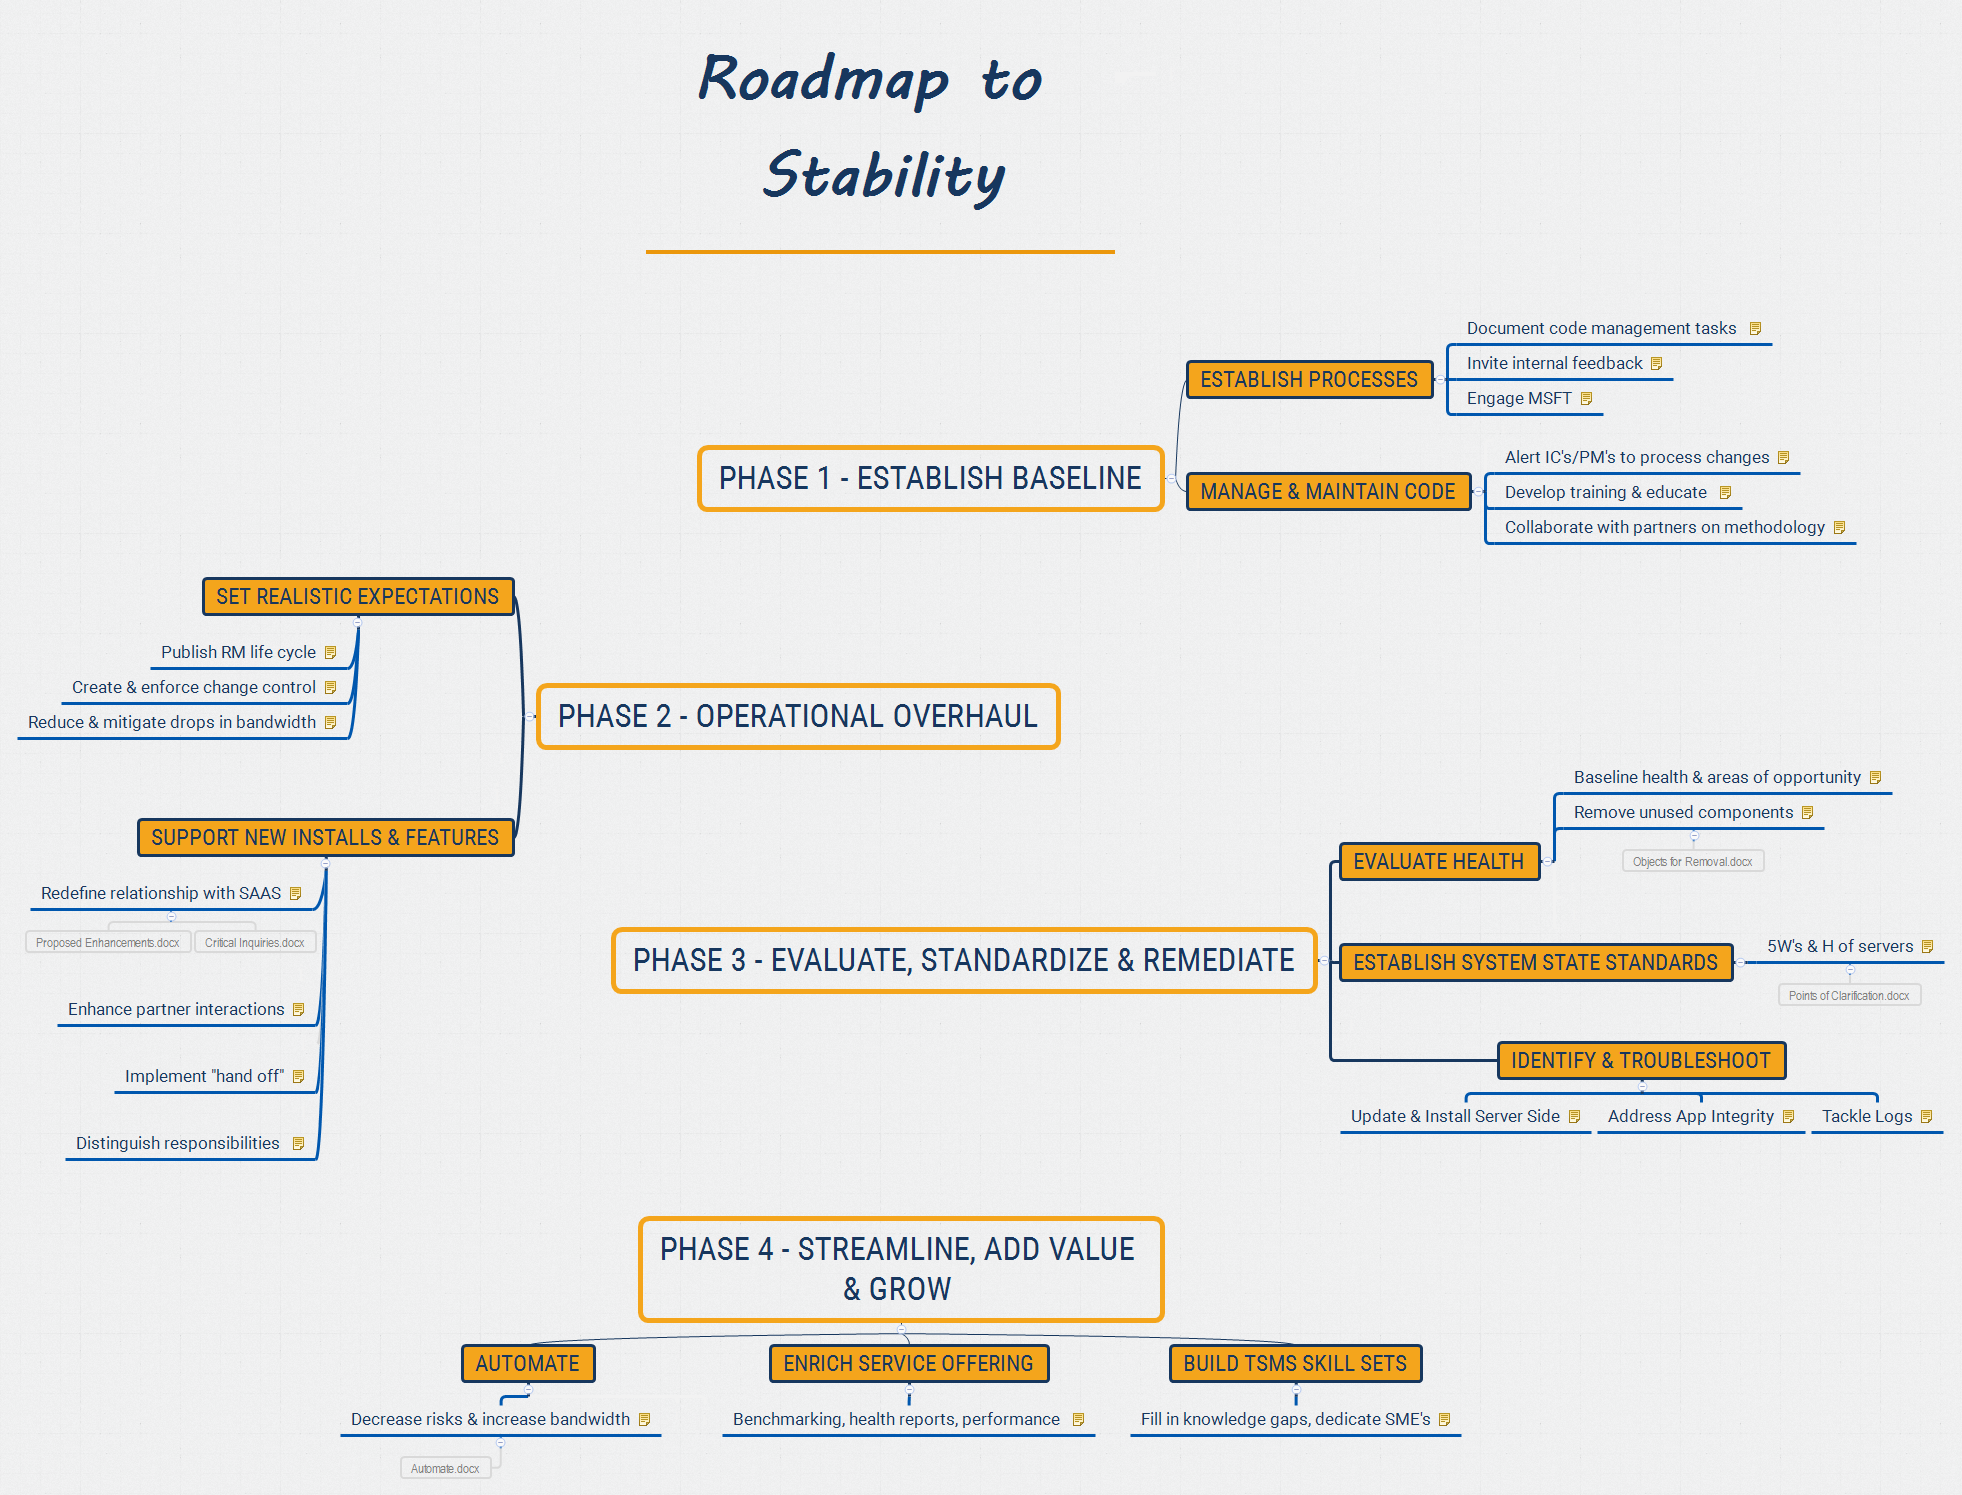 roadmap to stability